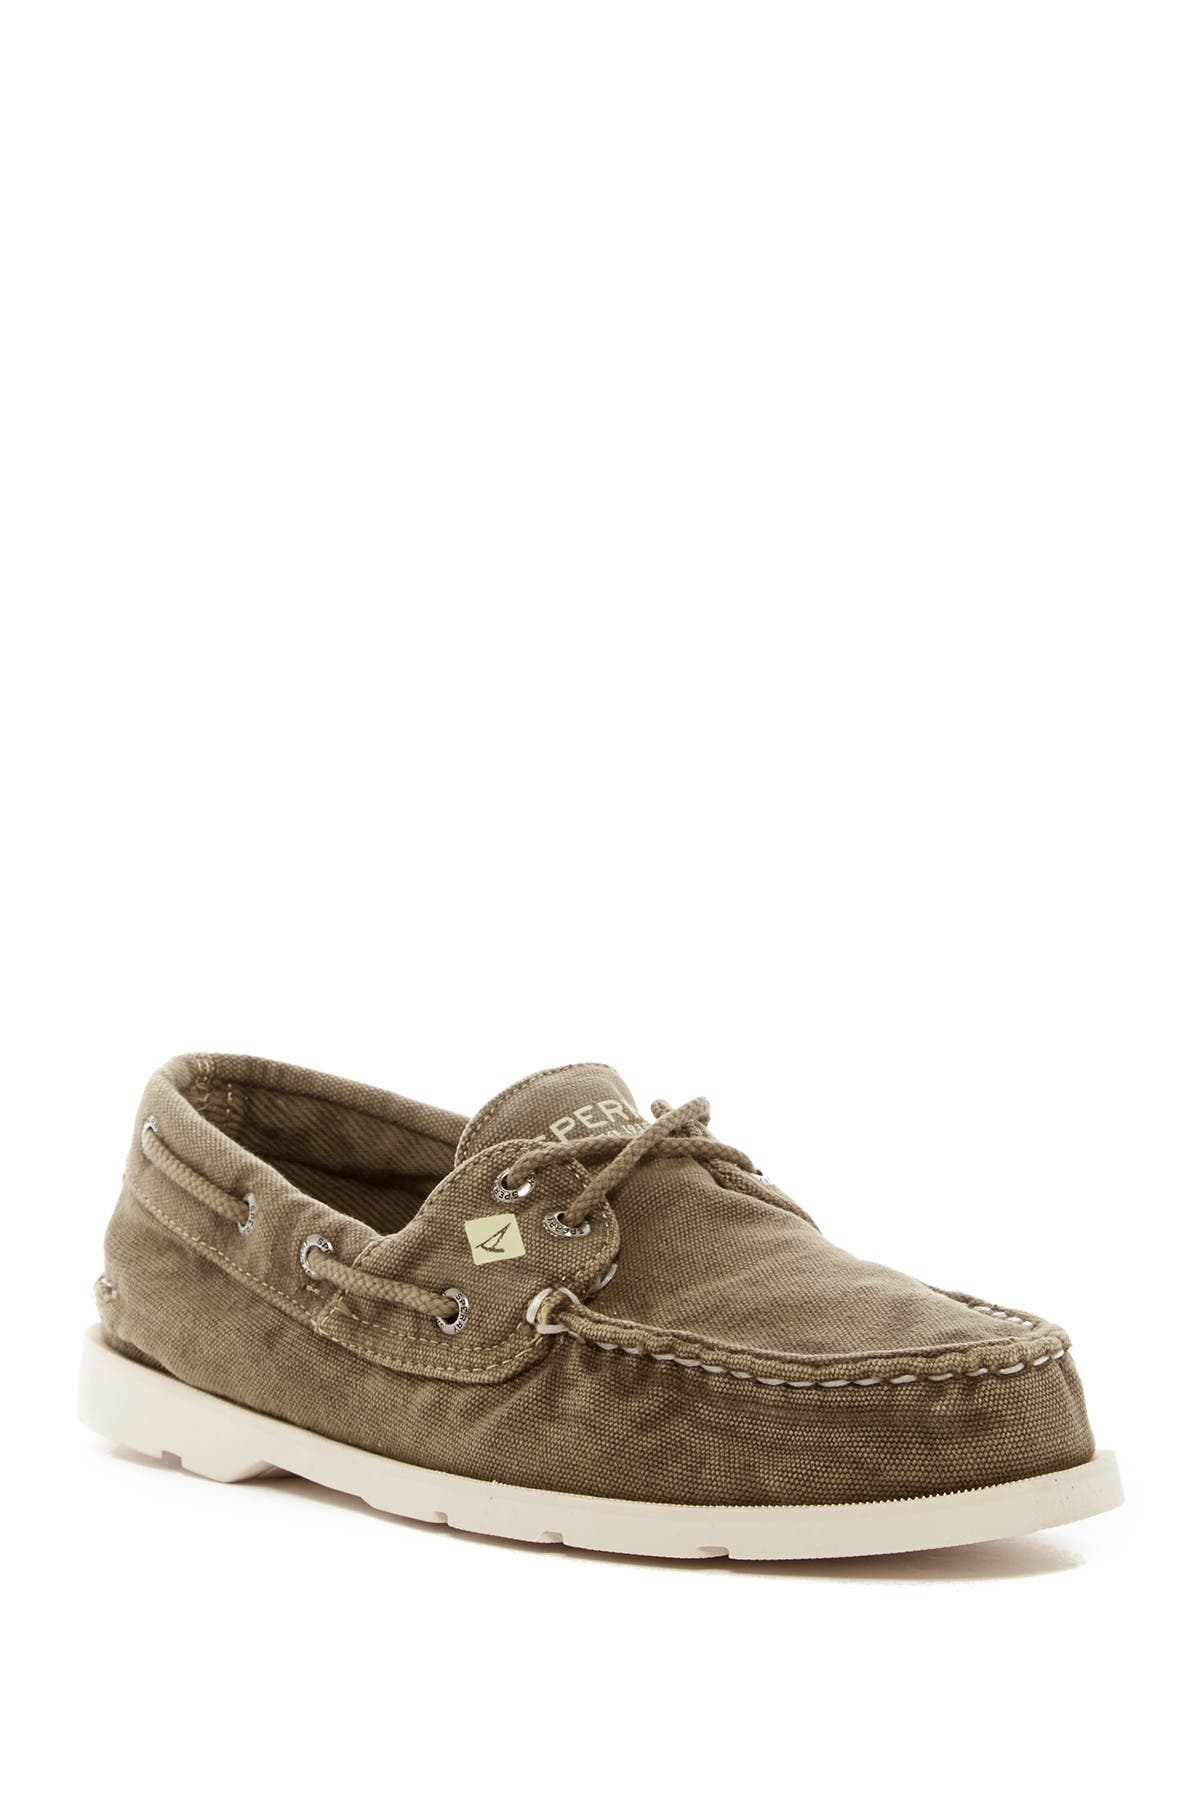 Image of Sperry Leeward Washed Canvas Boat Shoe